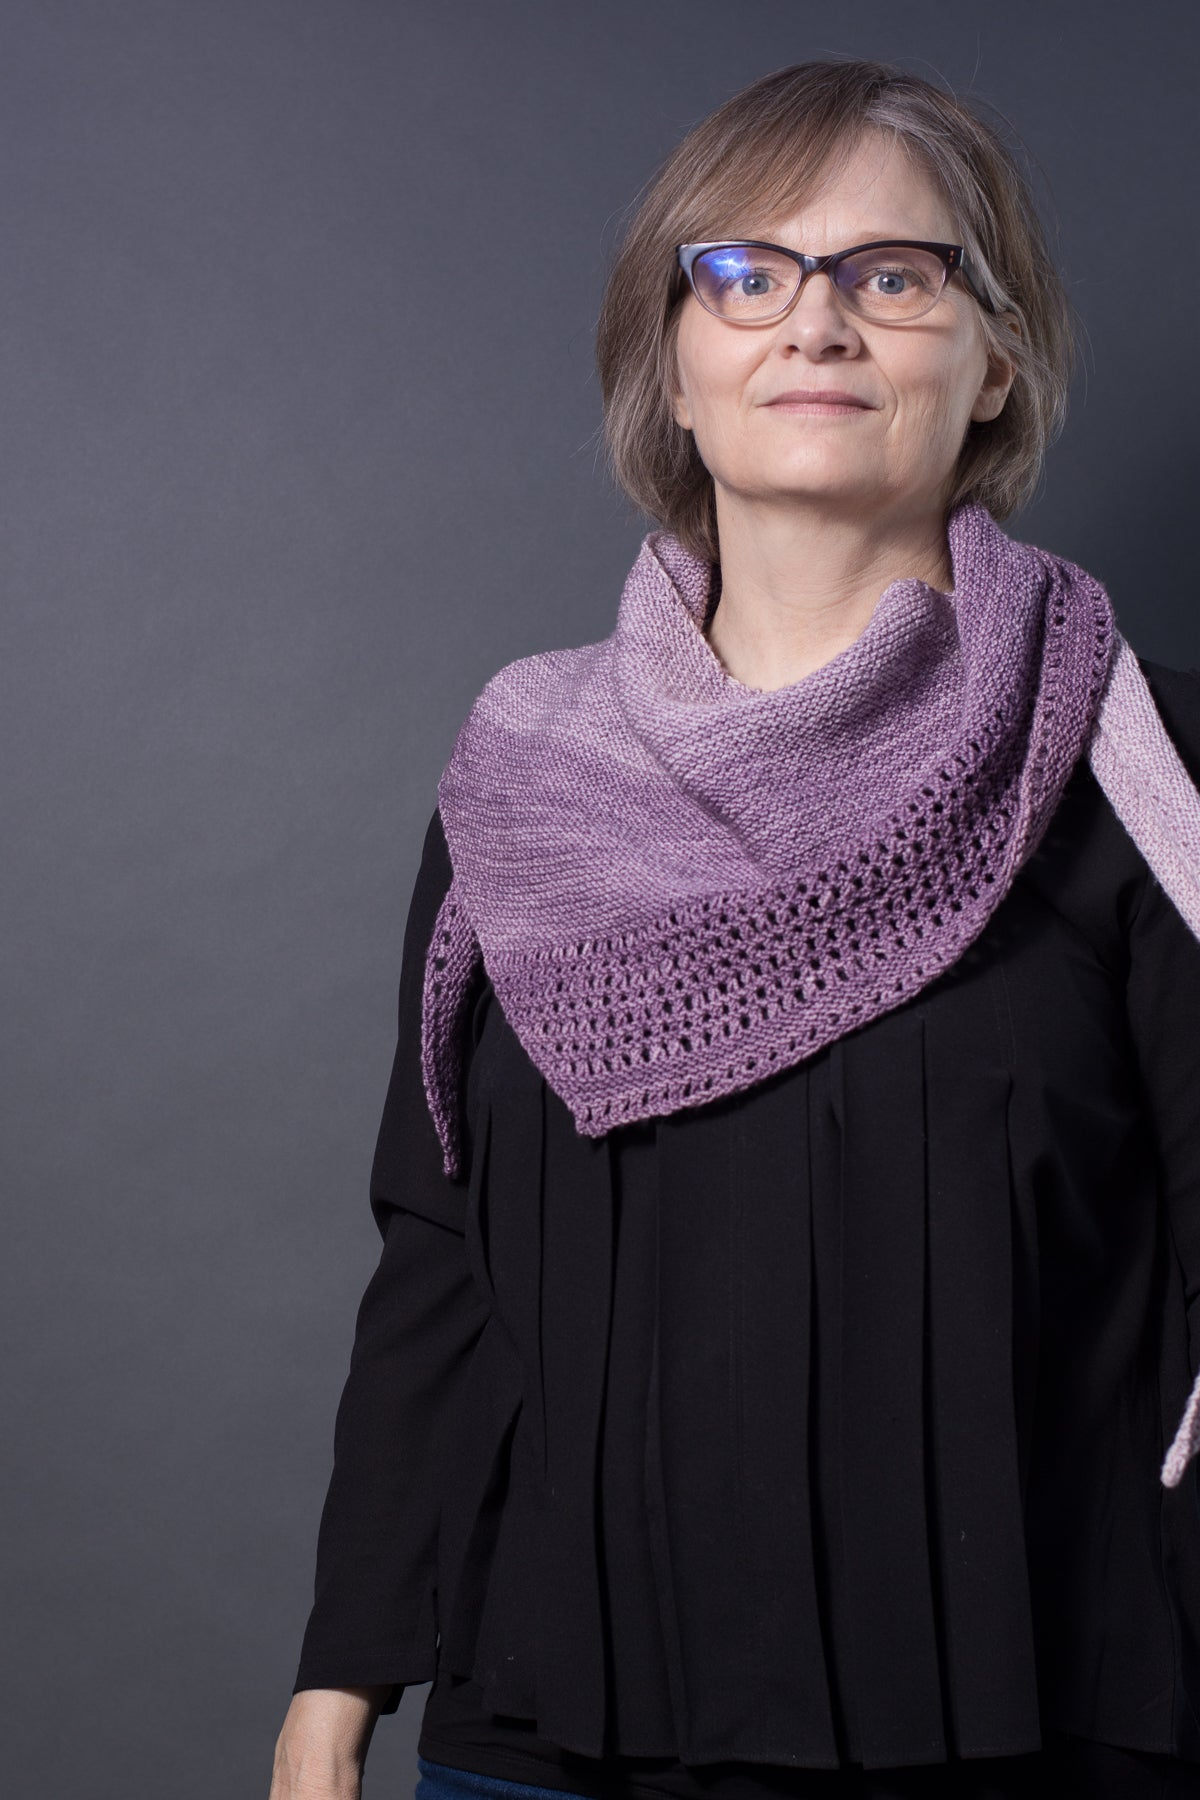 sideways triangle knit scarf